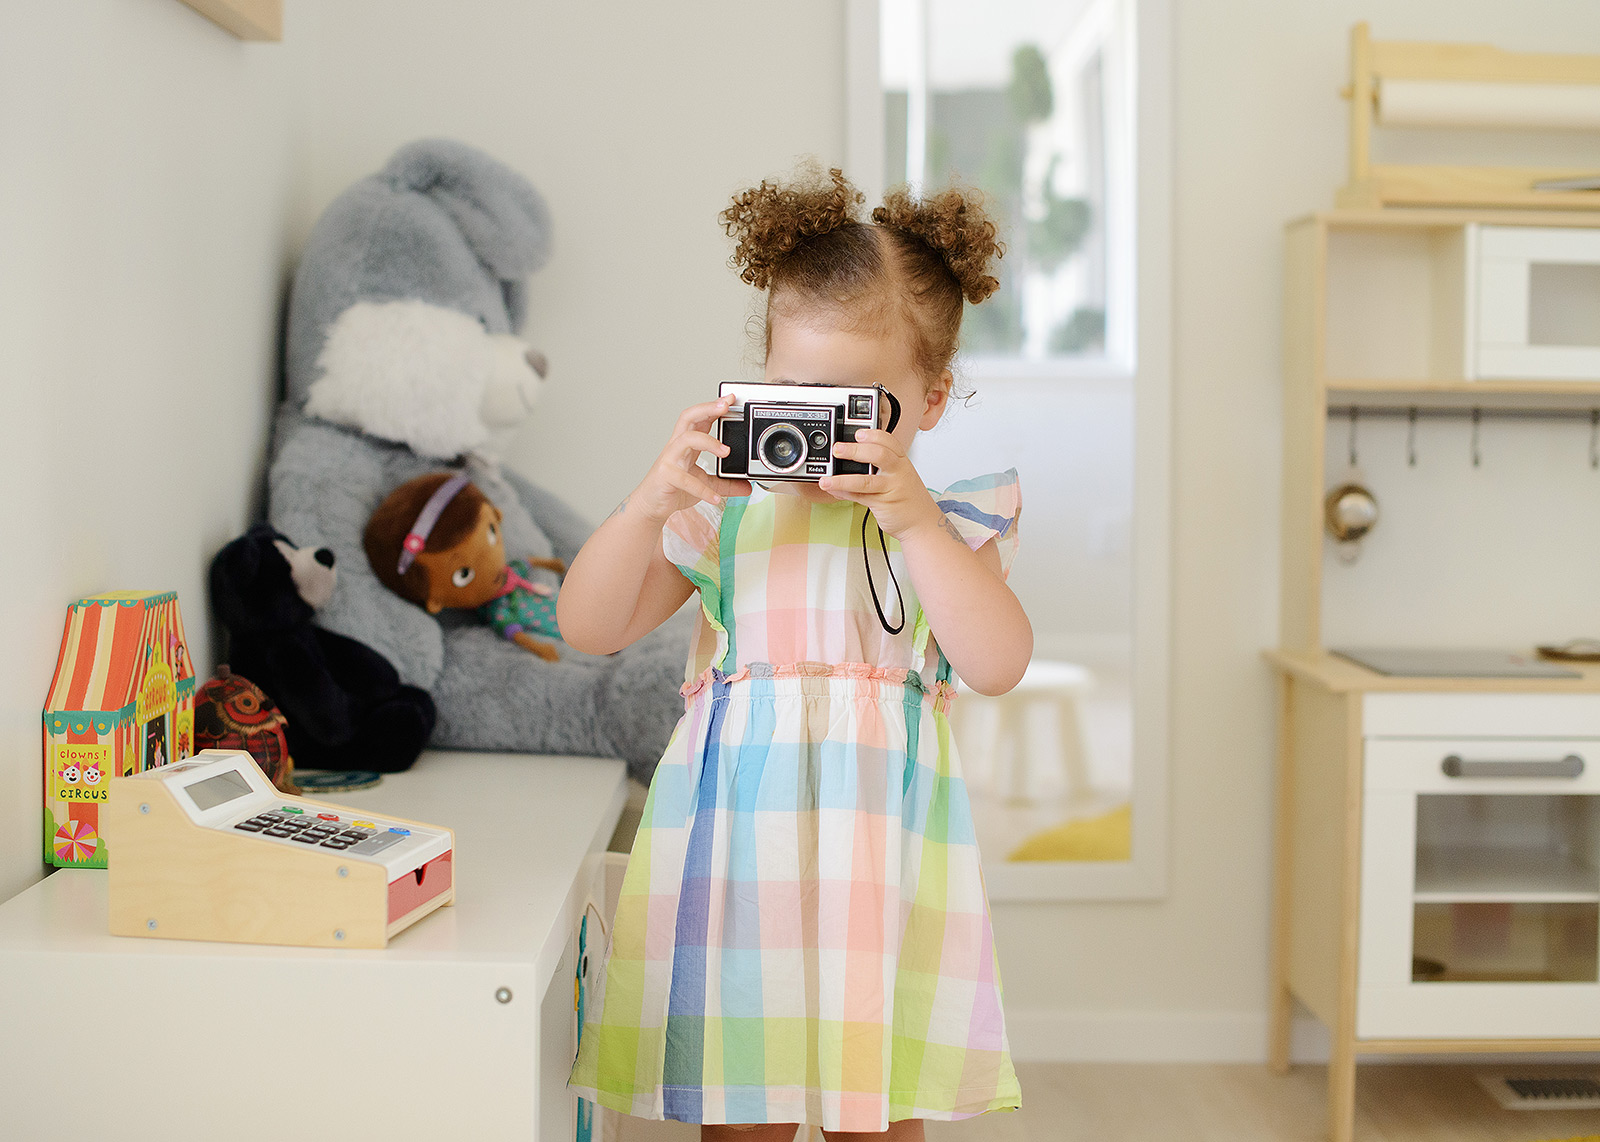 Toddler girl taking a photo in her playroom wearing plaid dress